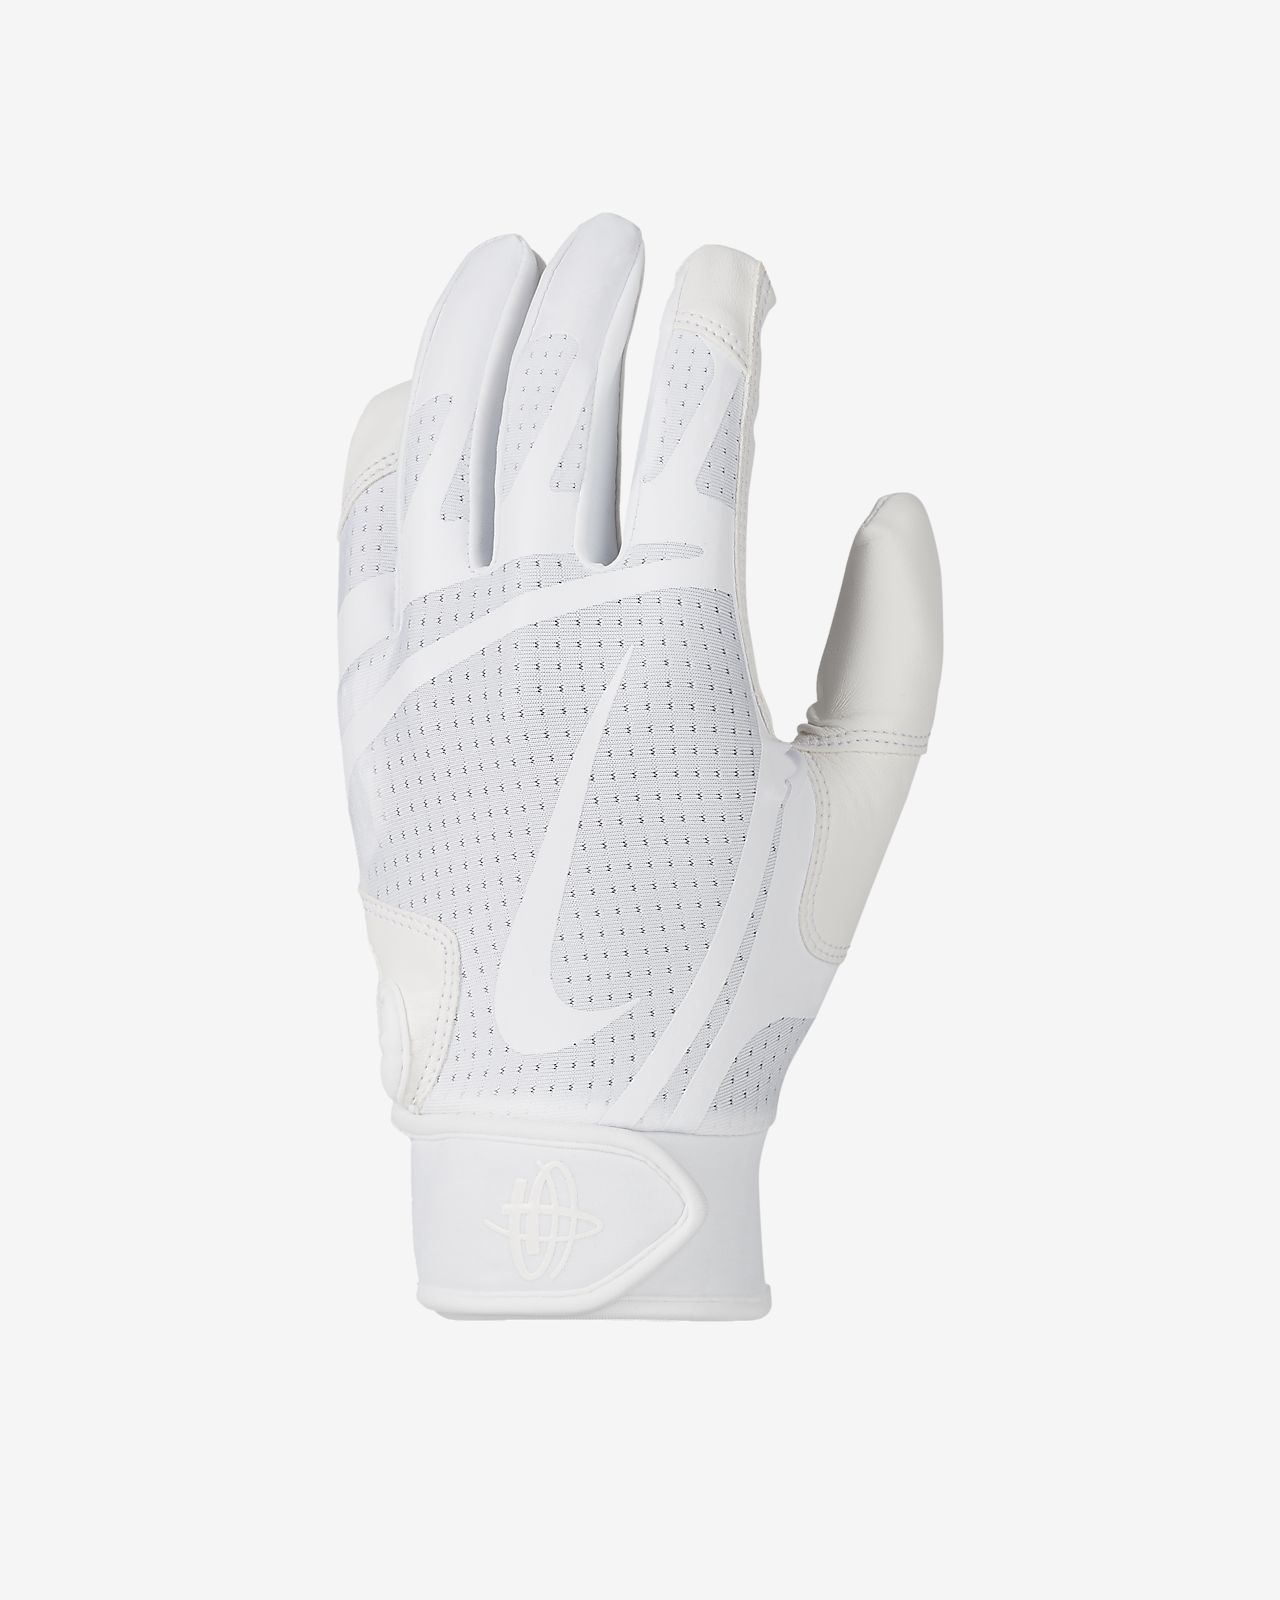 12735a006c2f Nike Huarache Edge Baseball Batting Gloves. Nike.com